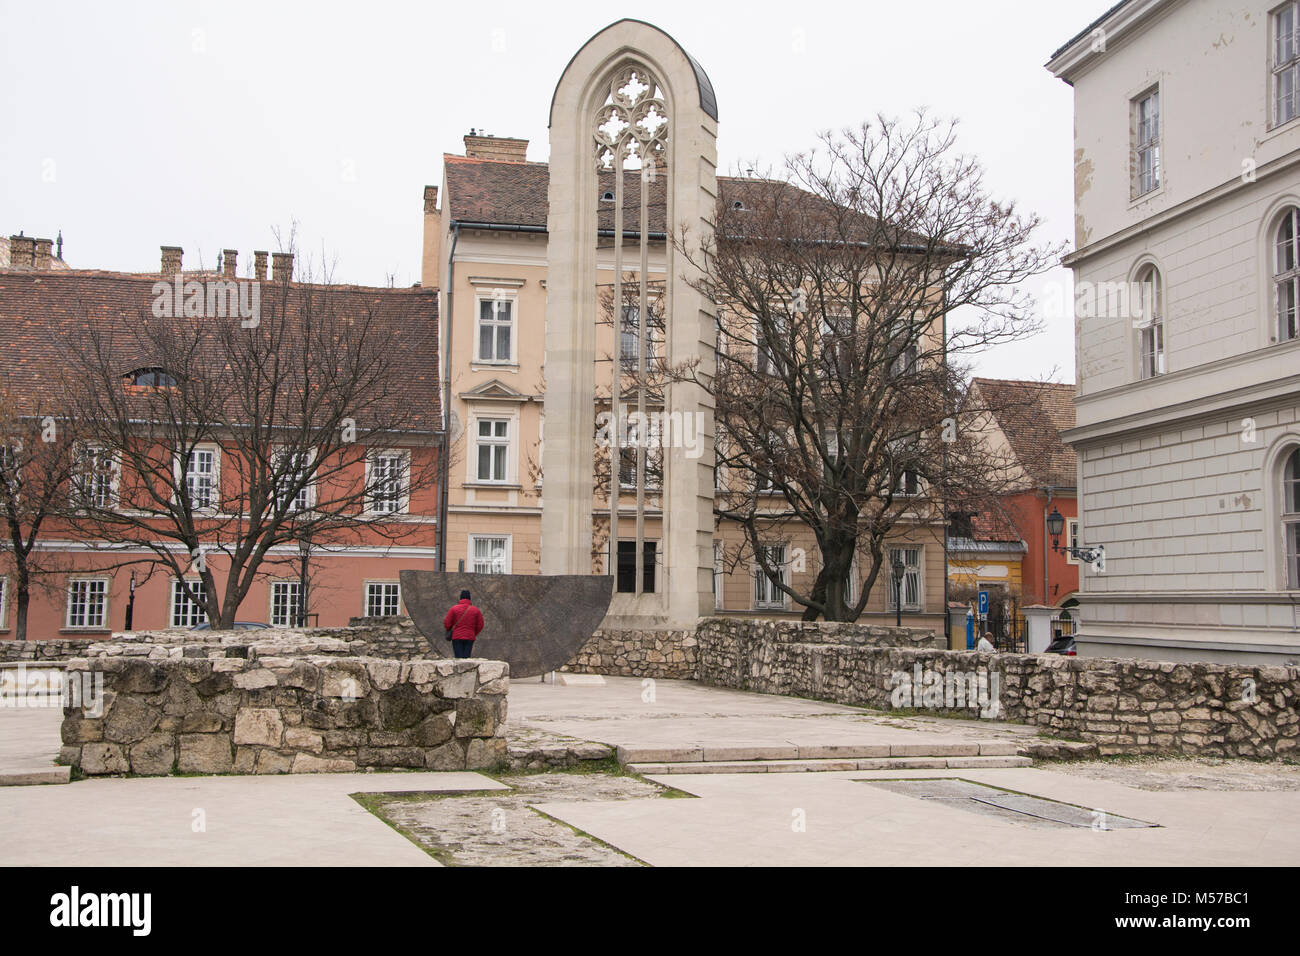 February 6th 2018 - Church Of St Mary Magdelene Budapest Hungary - This Church was built  in the 13th Centuary for - Stock Image